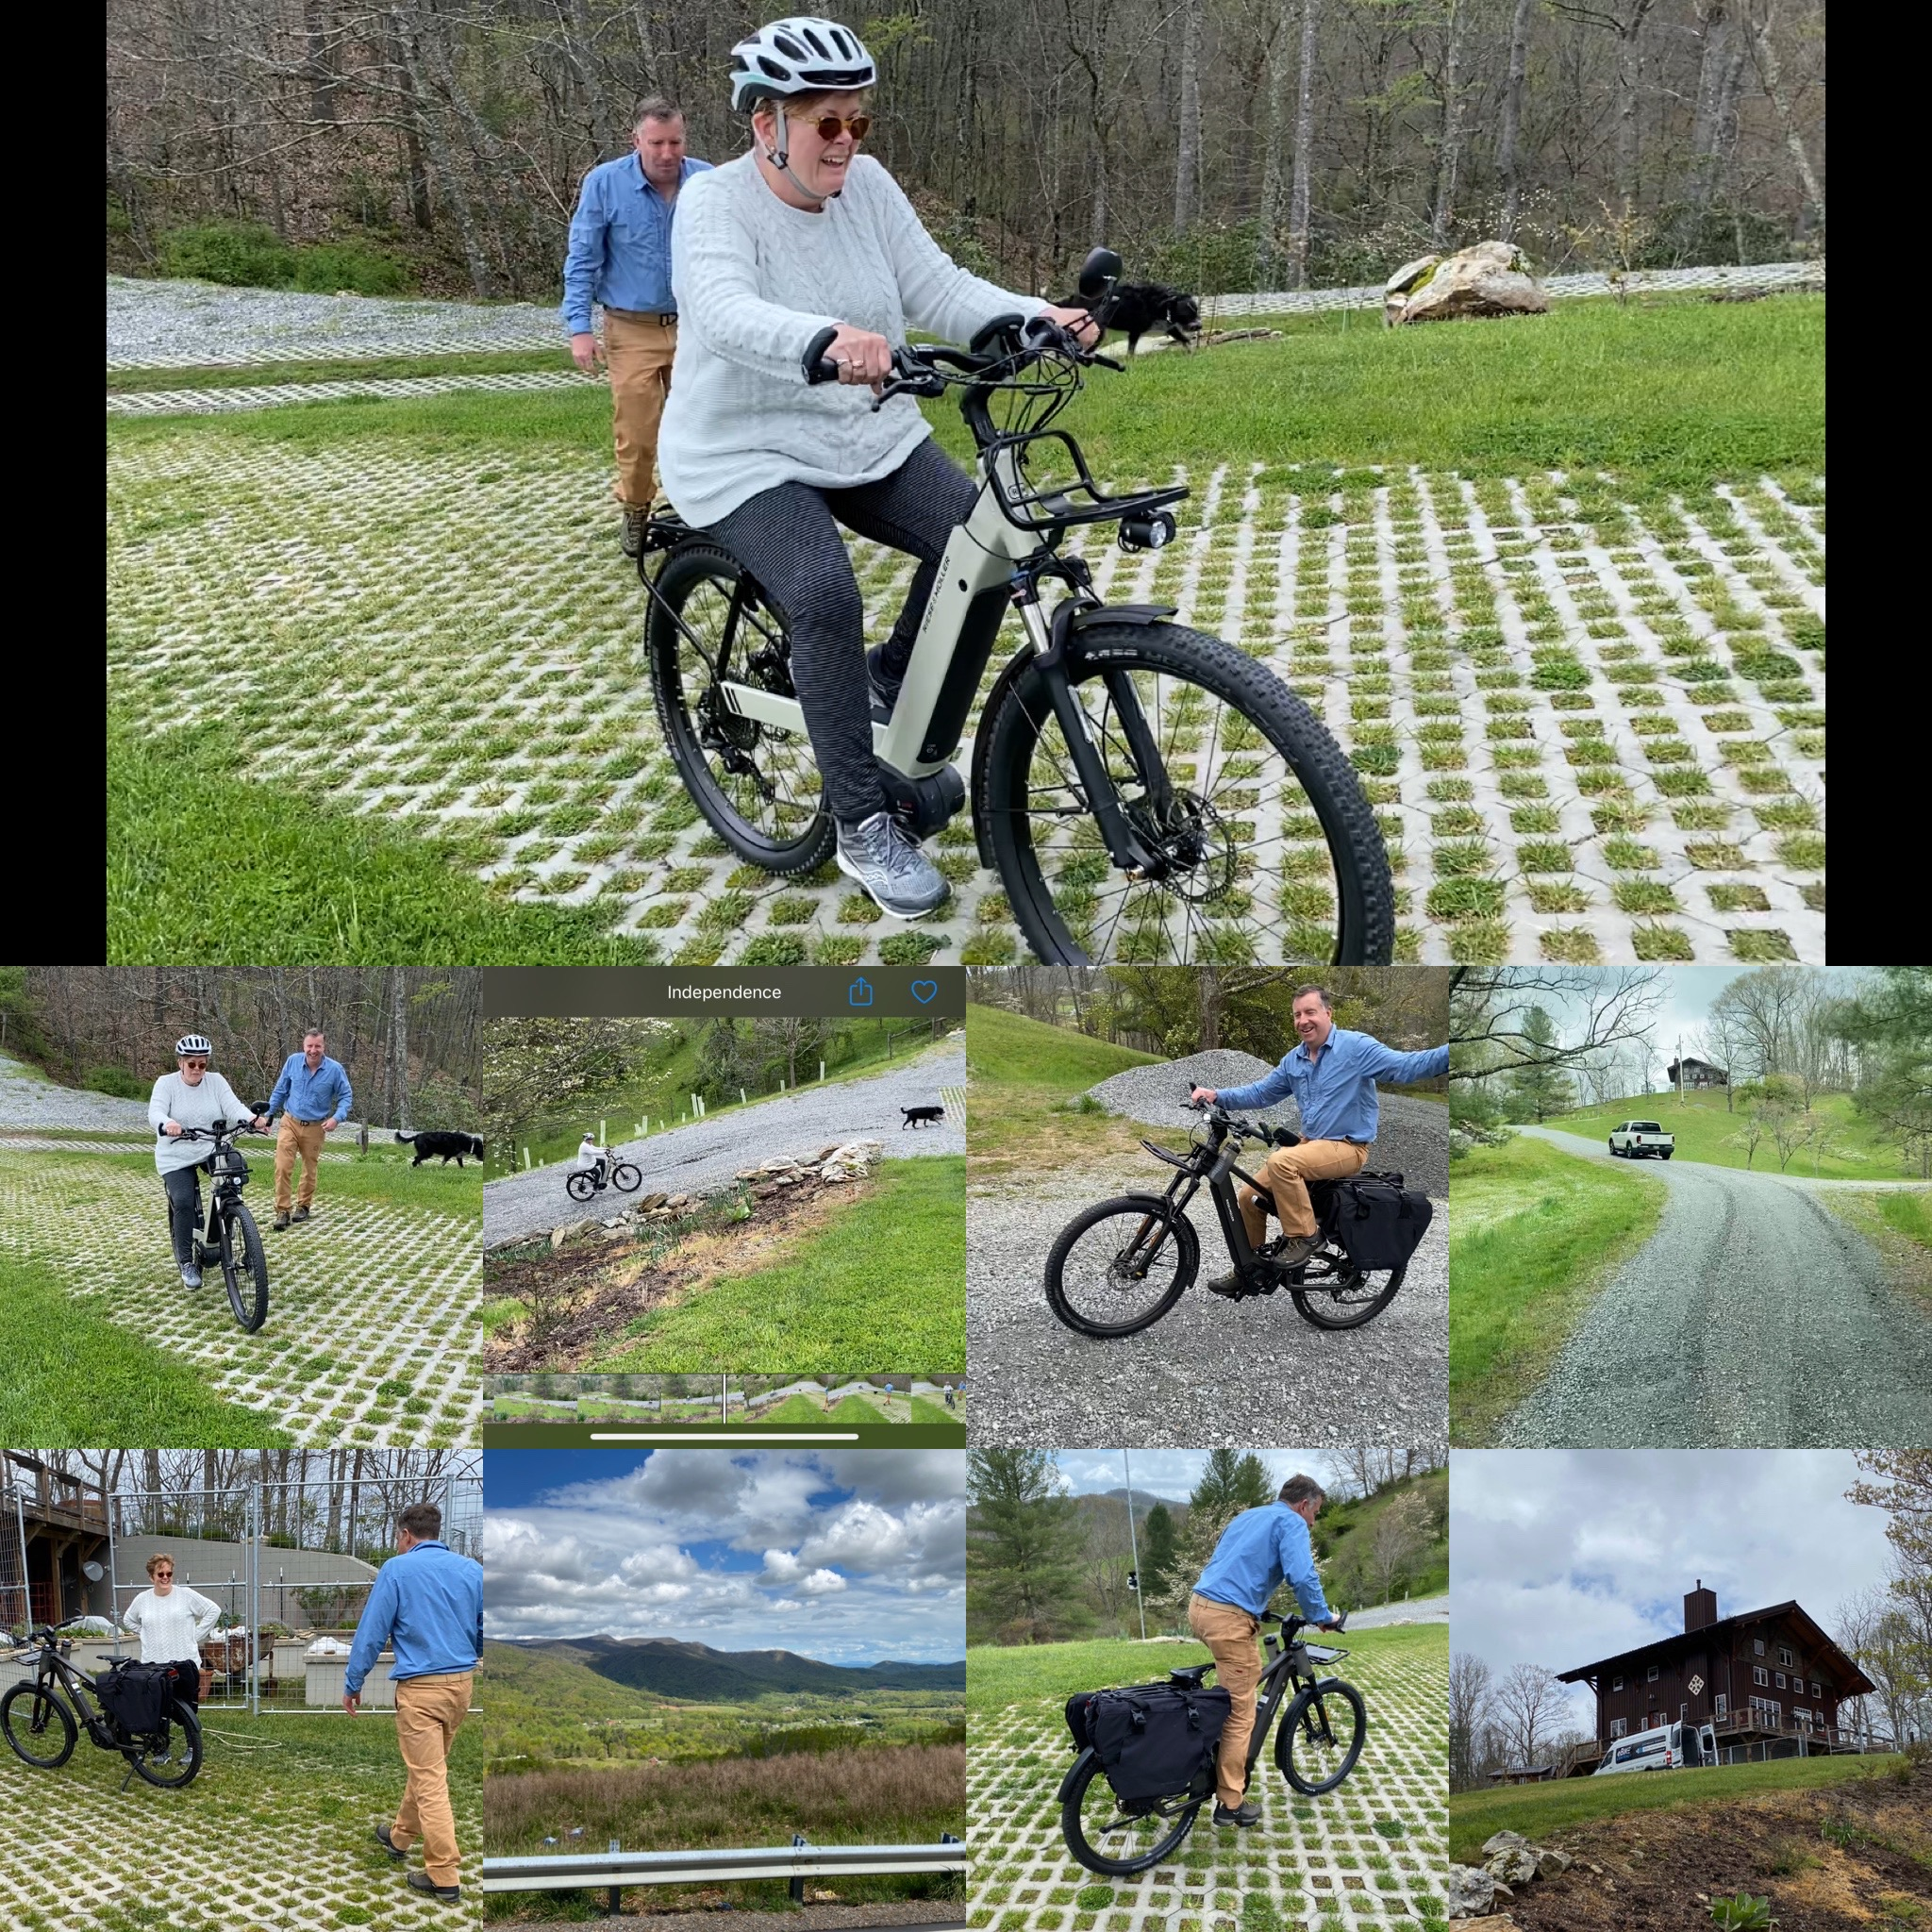 eBike Central in Independence VA, Riese & Muller Nevo GX Touring HS